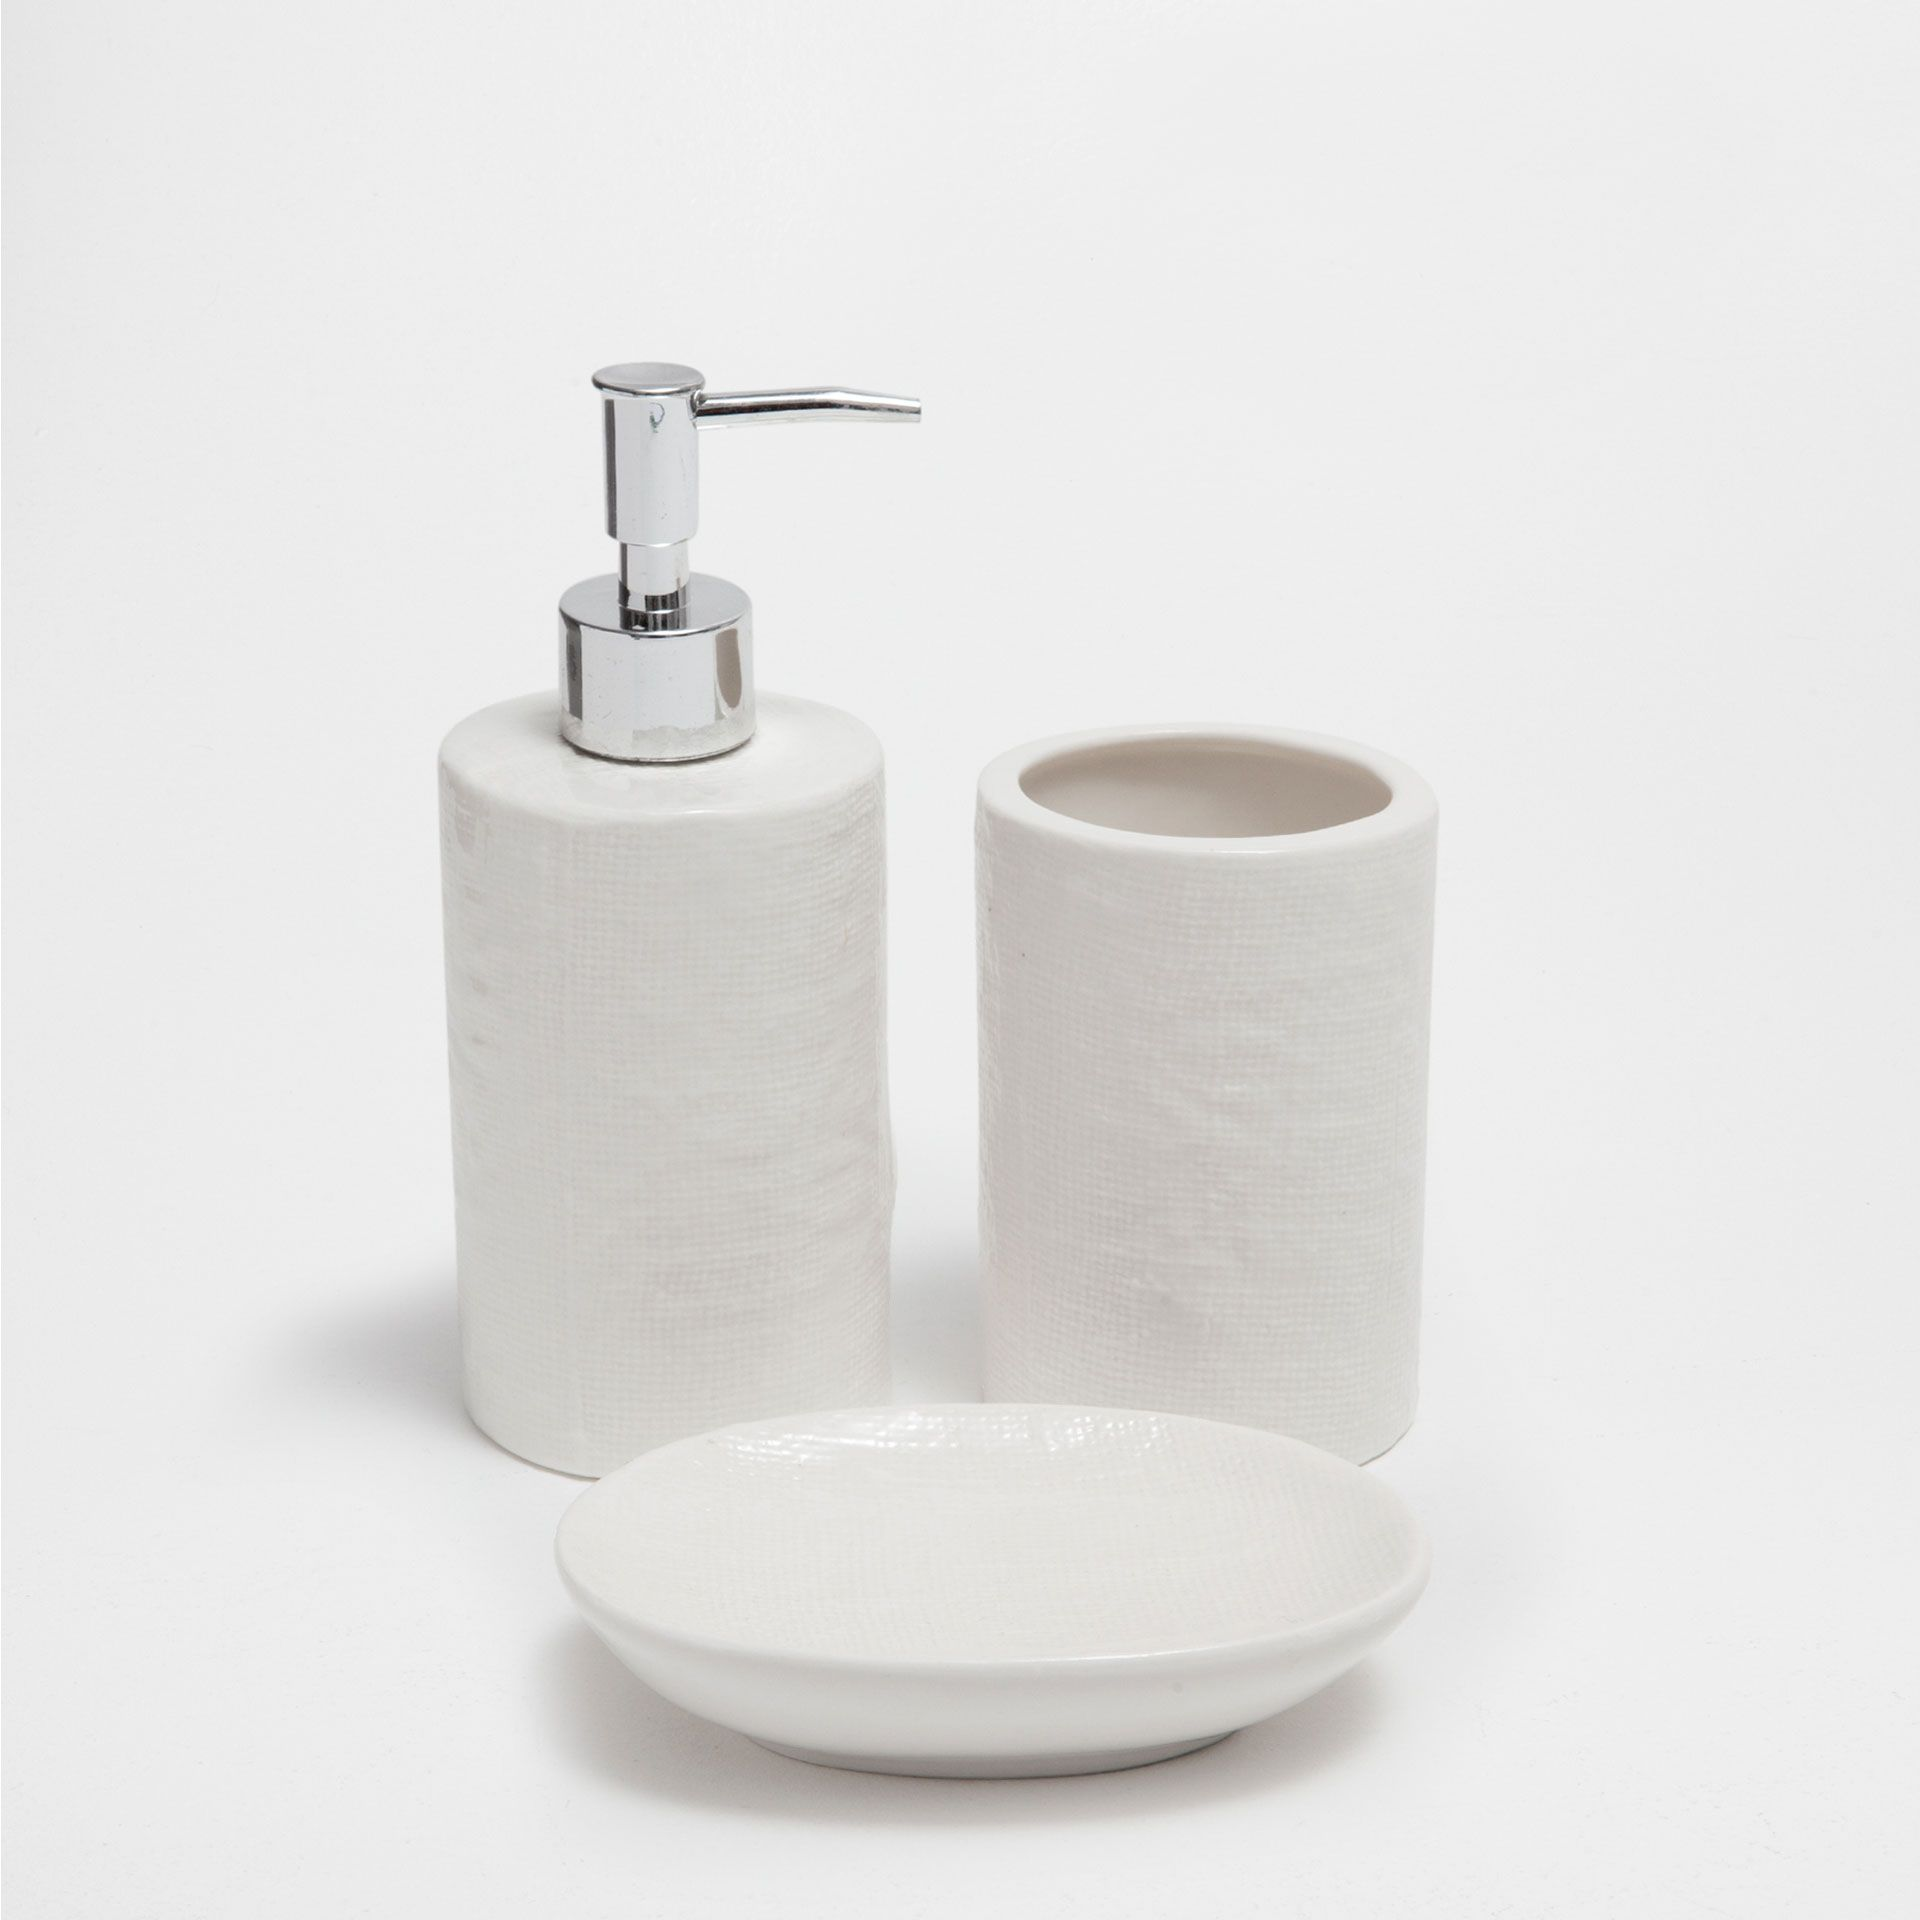 Access Denied Bathroom Sets White Ceramics Bathroom Soap Dispenser